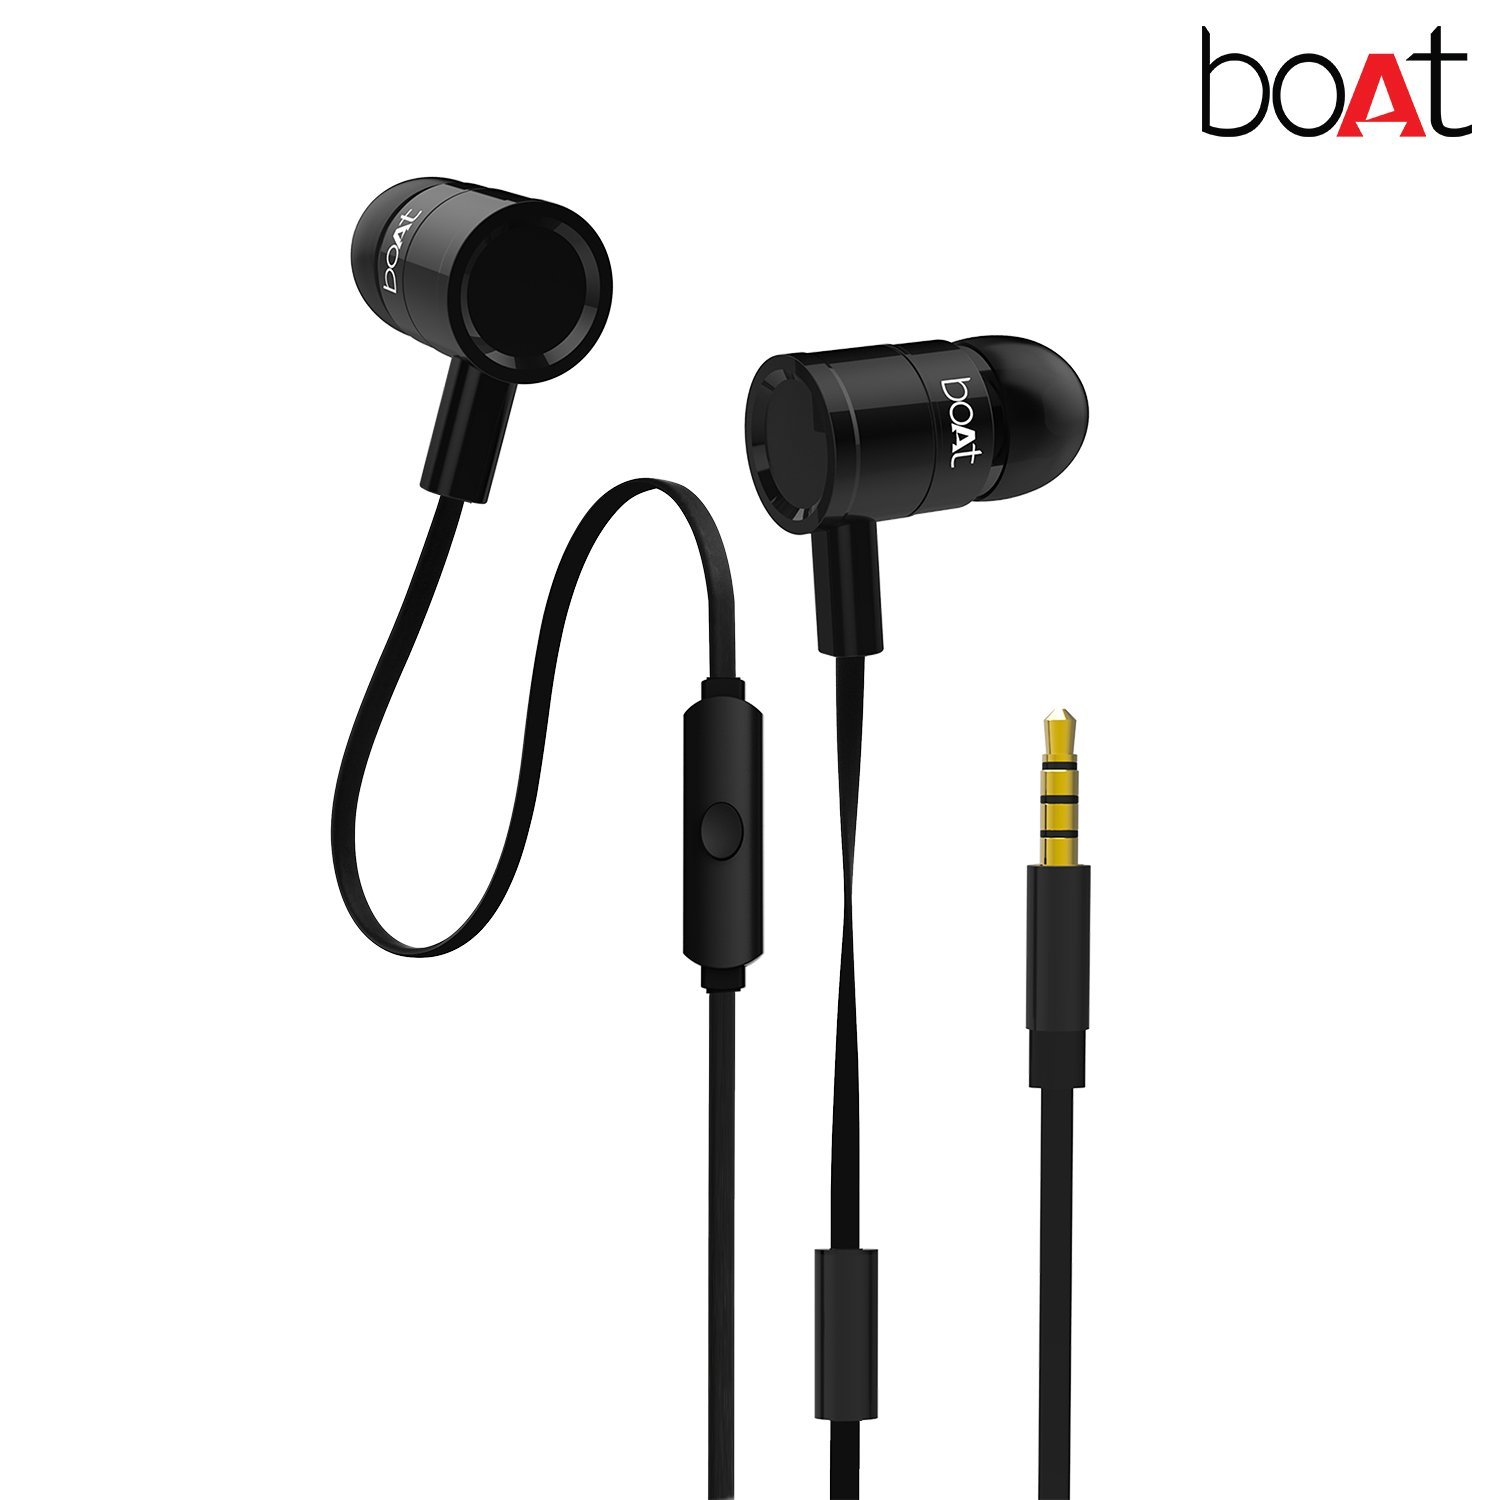 a9cc8f1001d BOAT BASSHEADS 230 IN-EAR EXTRA BASS EARPHONES WITH MIC Reviews ...